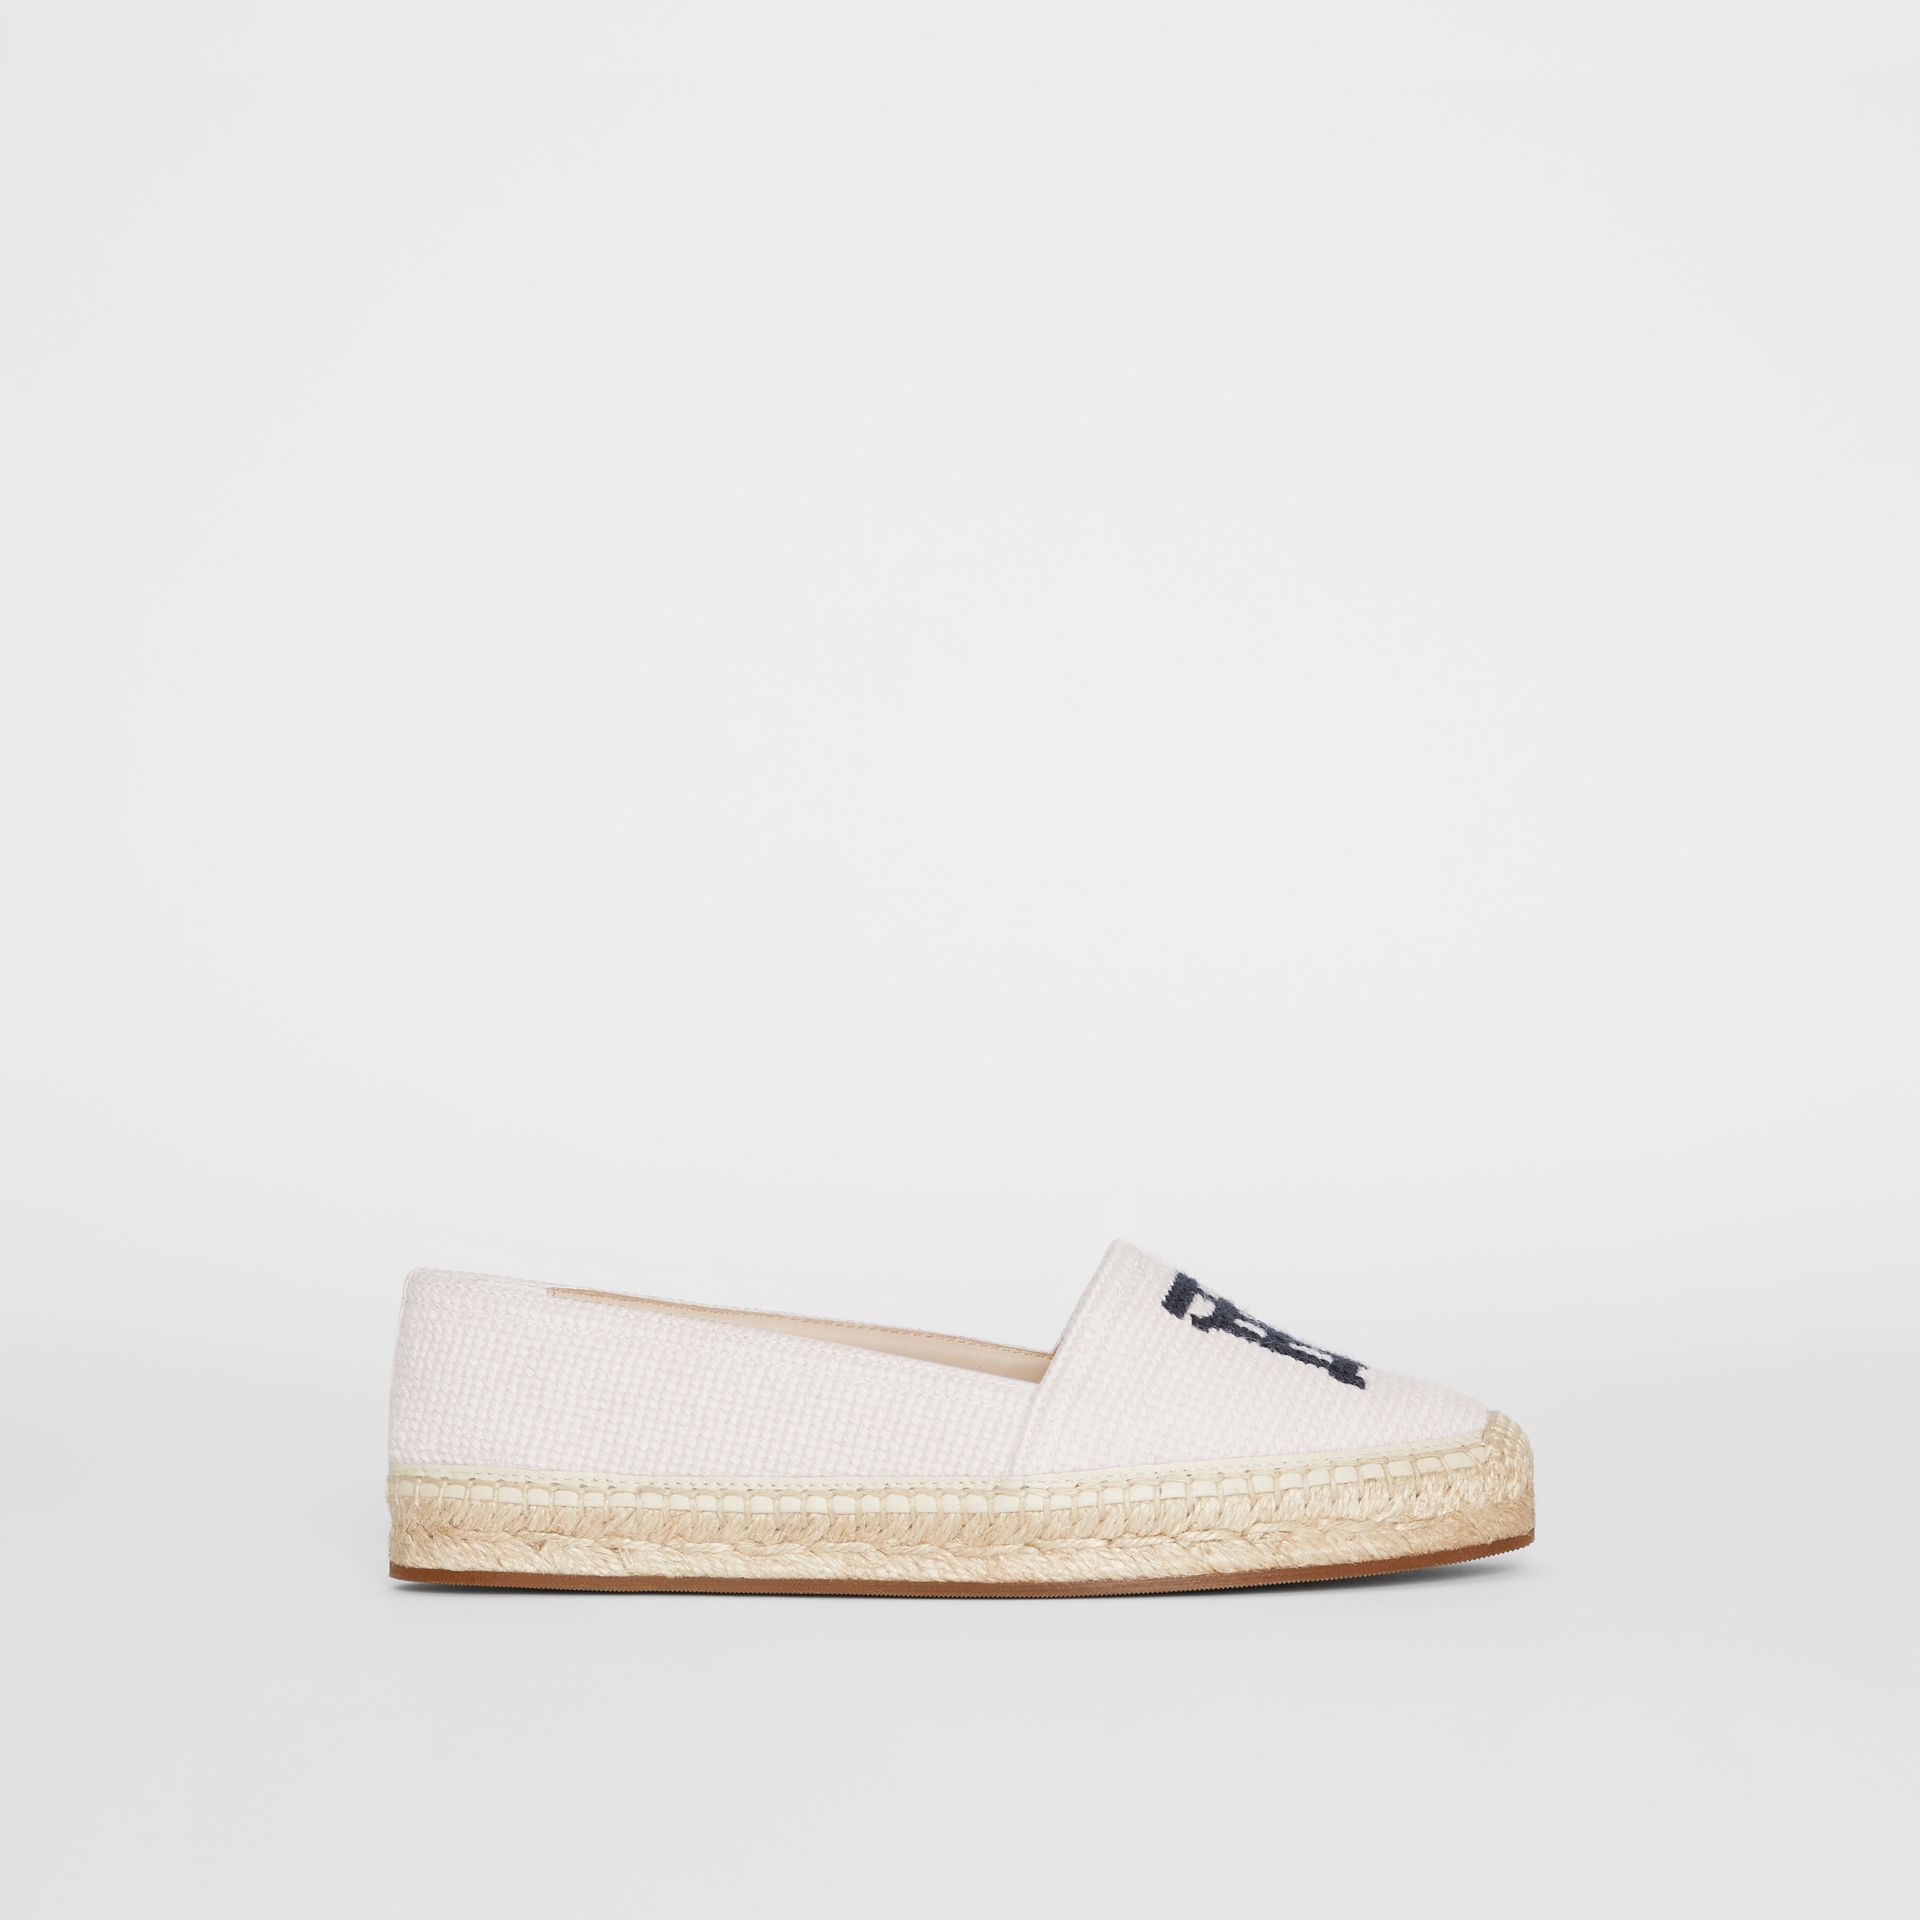 Monogram Motif Cotton and Leather Espadrilles in Ecru/black - Women | Burberry United States - gallery image 4